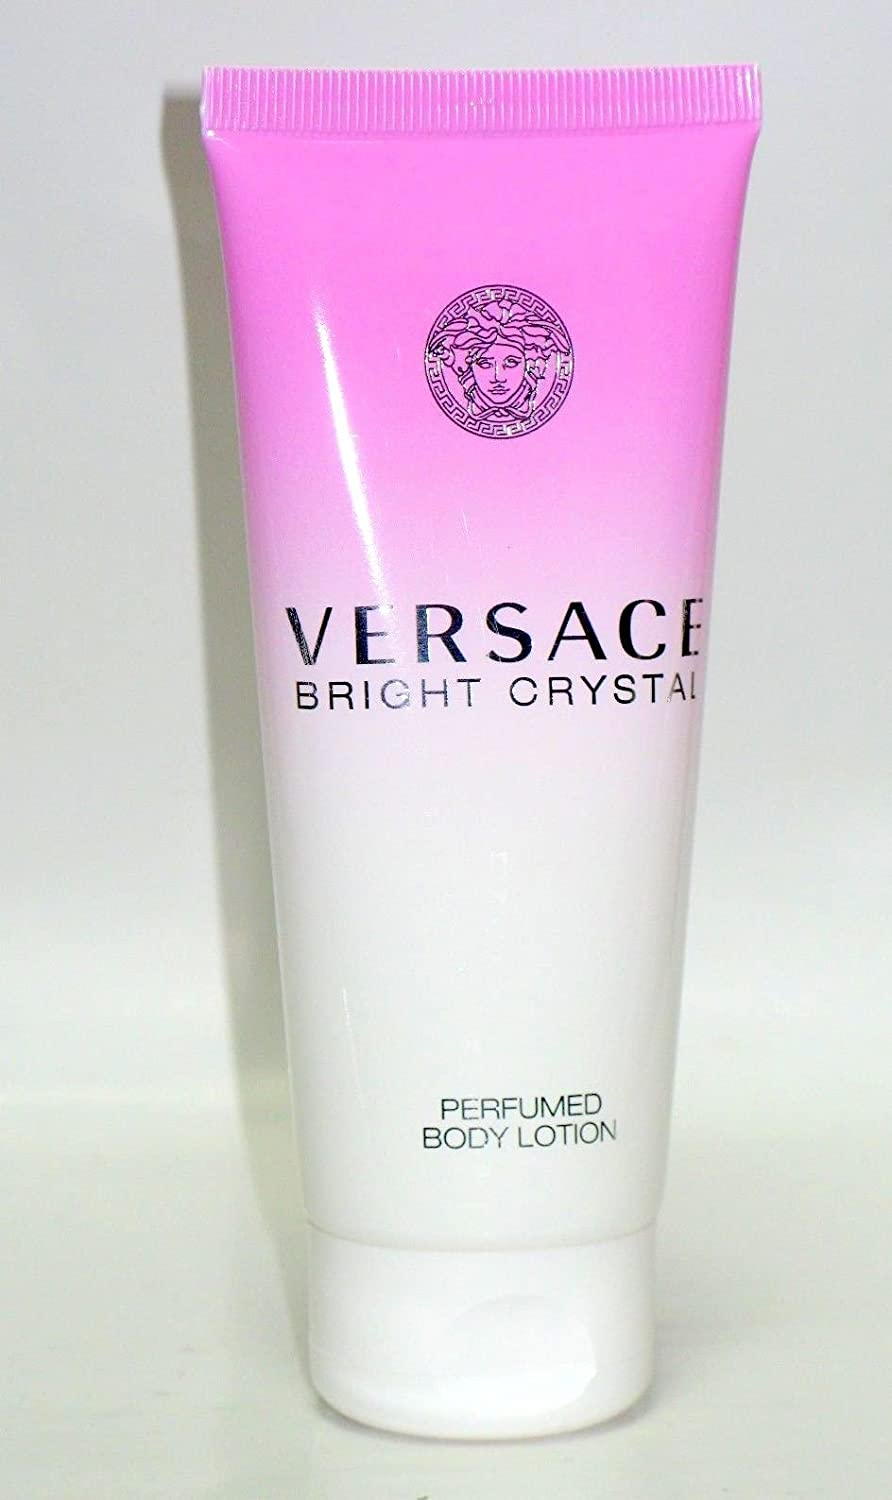 100ml3 Perfumed Lotion Body Oz Versace Bright Crystal 4fl 8n0vNwmyO